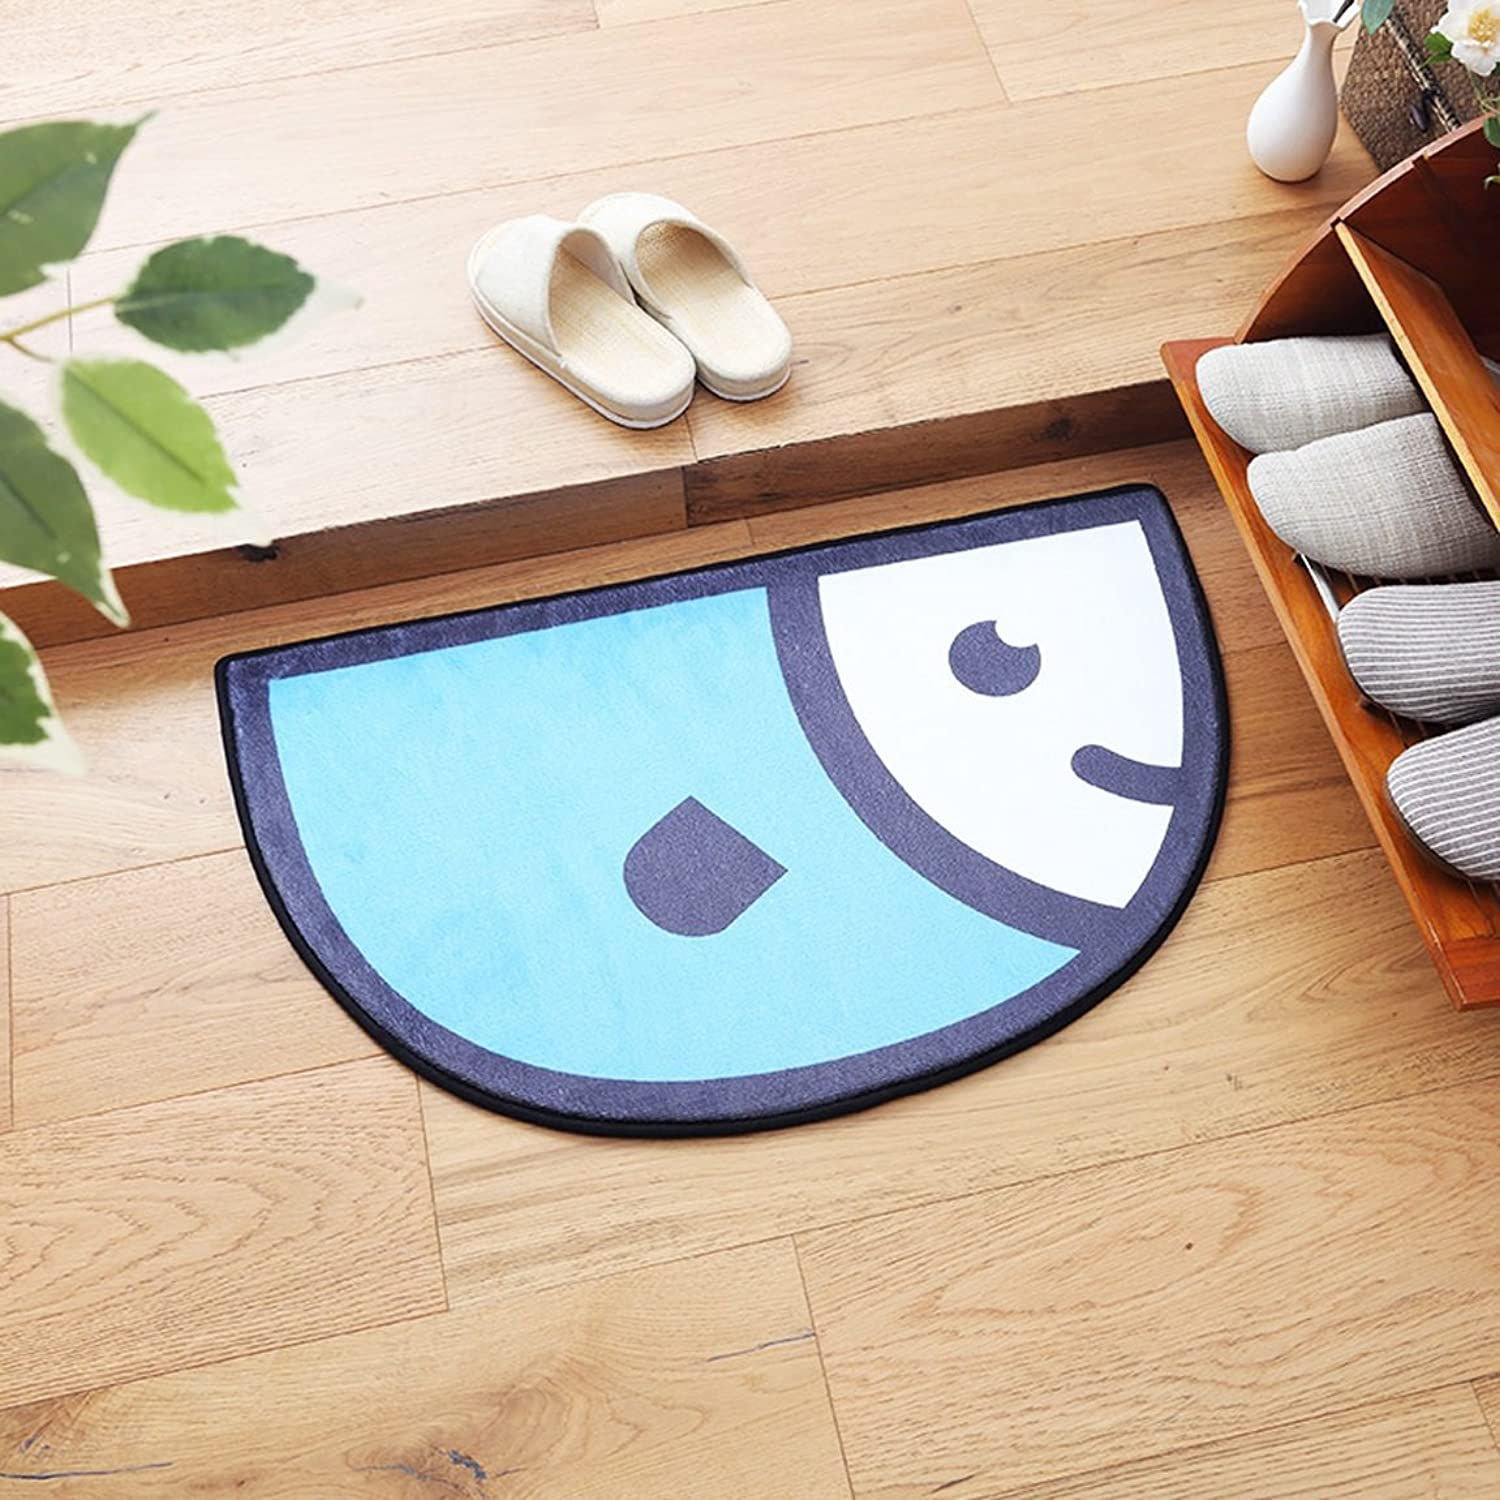 LRW Mat Bedroom Door Mat Cartoon Half Hall Bathroom Door Pad Toilet Bathroom Mat (color   C)